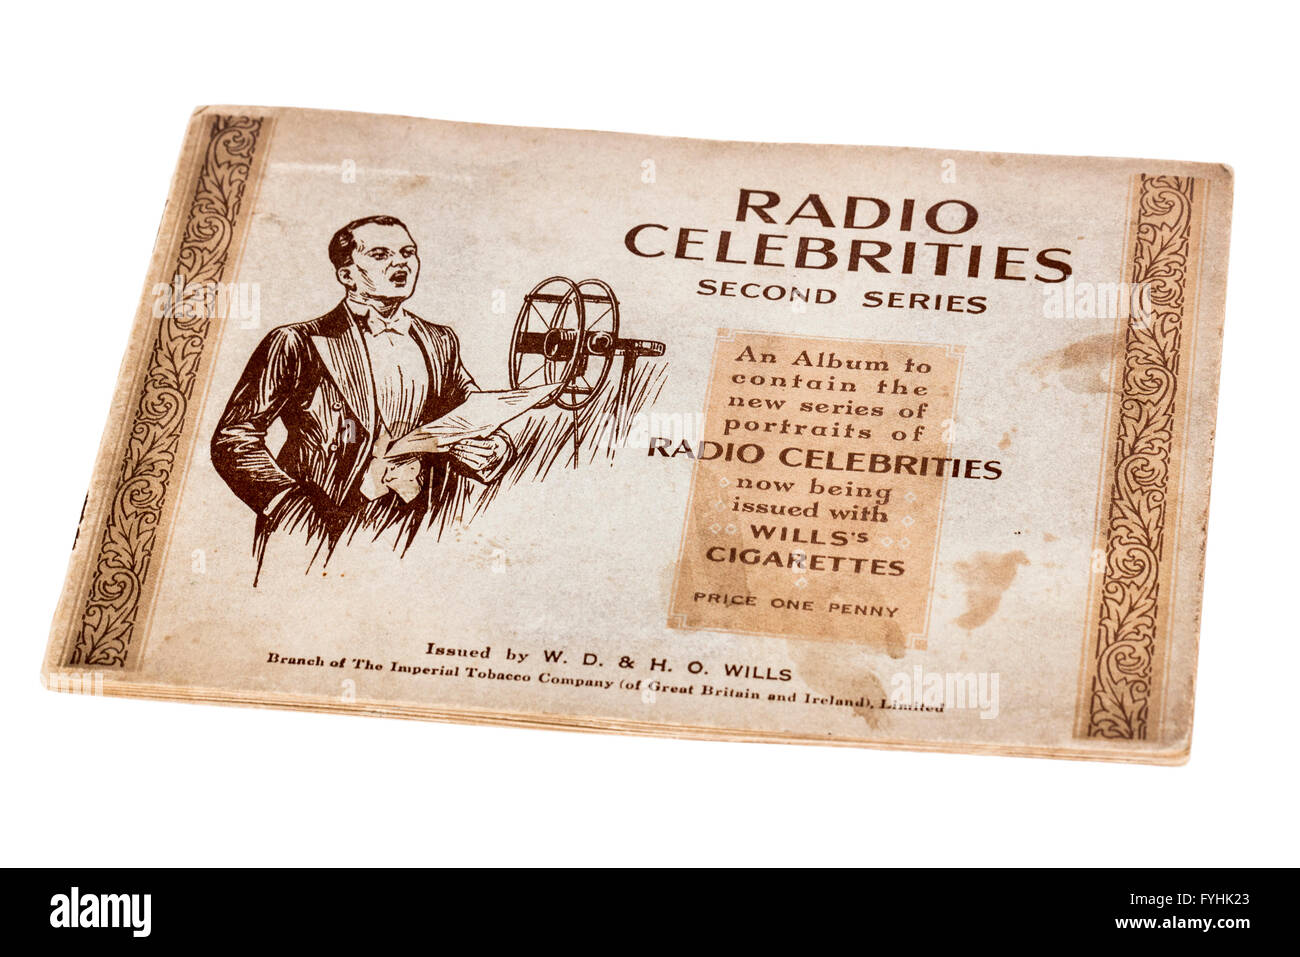 Wills cigarette card livre de radio des Stars Photo Stock